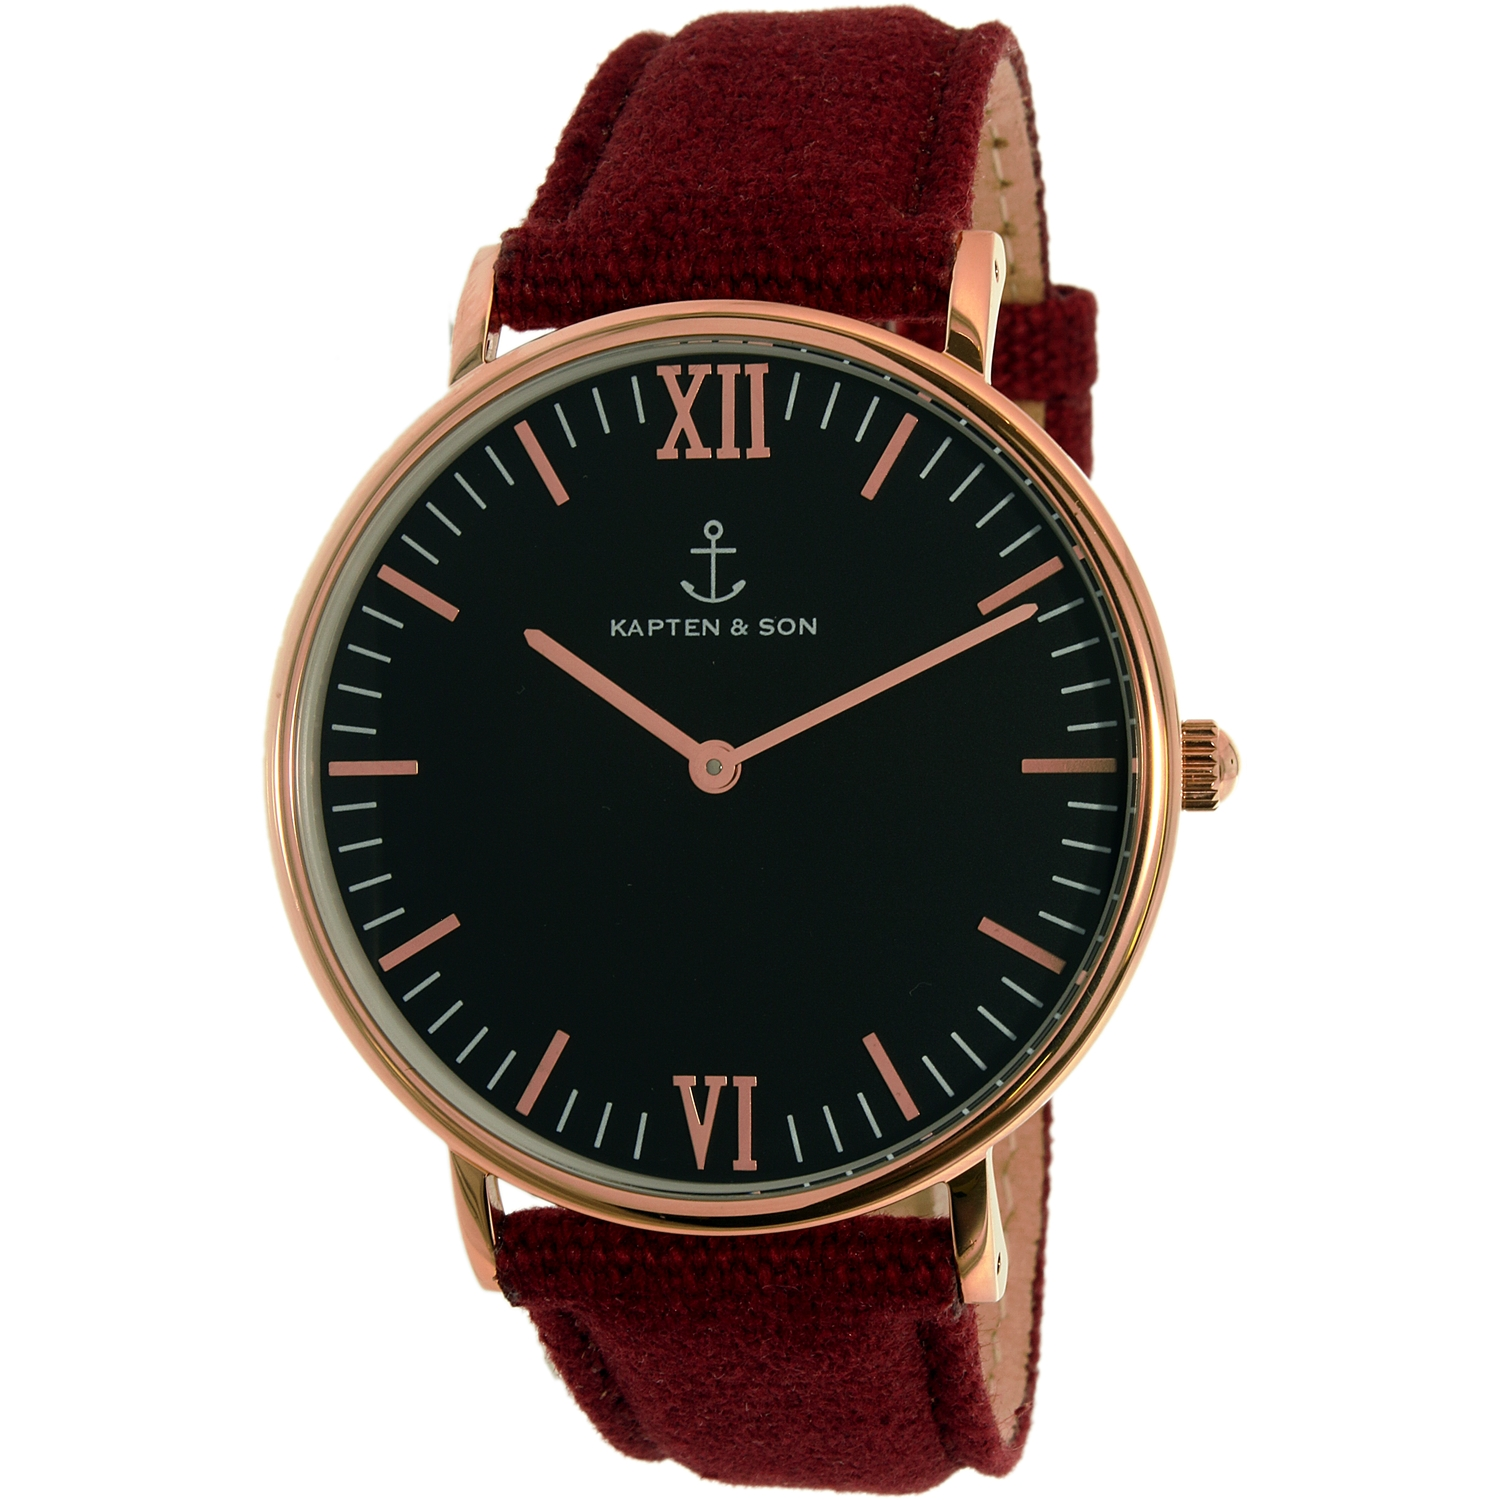 Kapten And Son Men's Campus CAMPUS-BLACK-BORDEAUX CANVAS-ROSE GOLD-40MM Rose Gold Leather Quartz Dress Watch